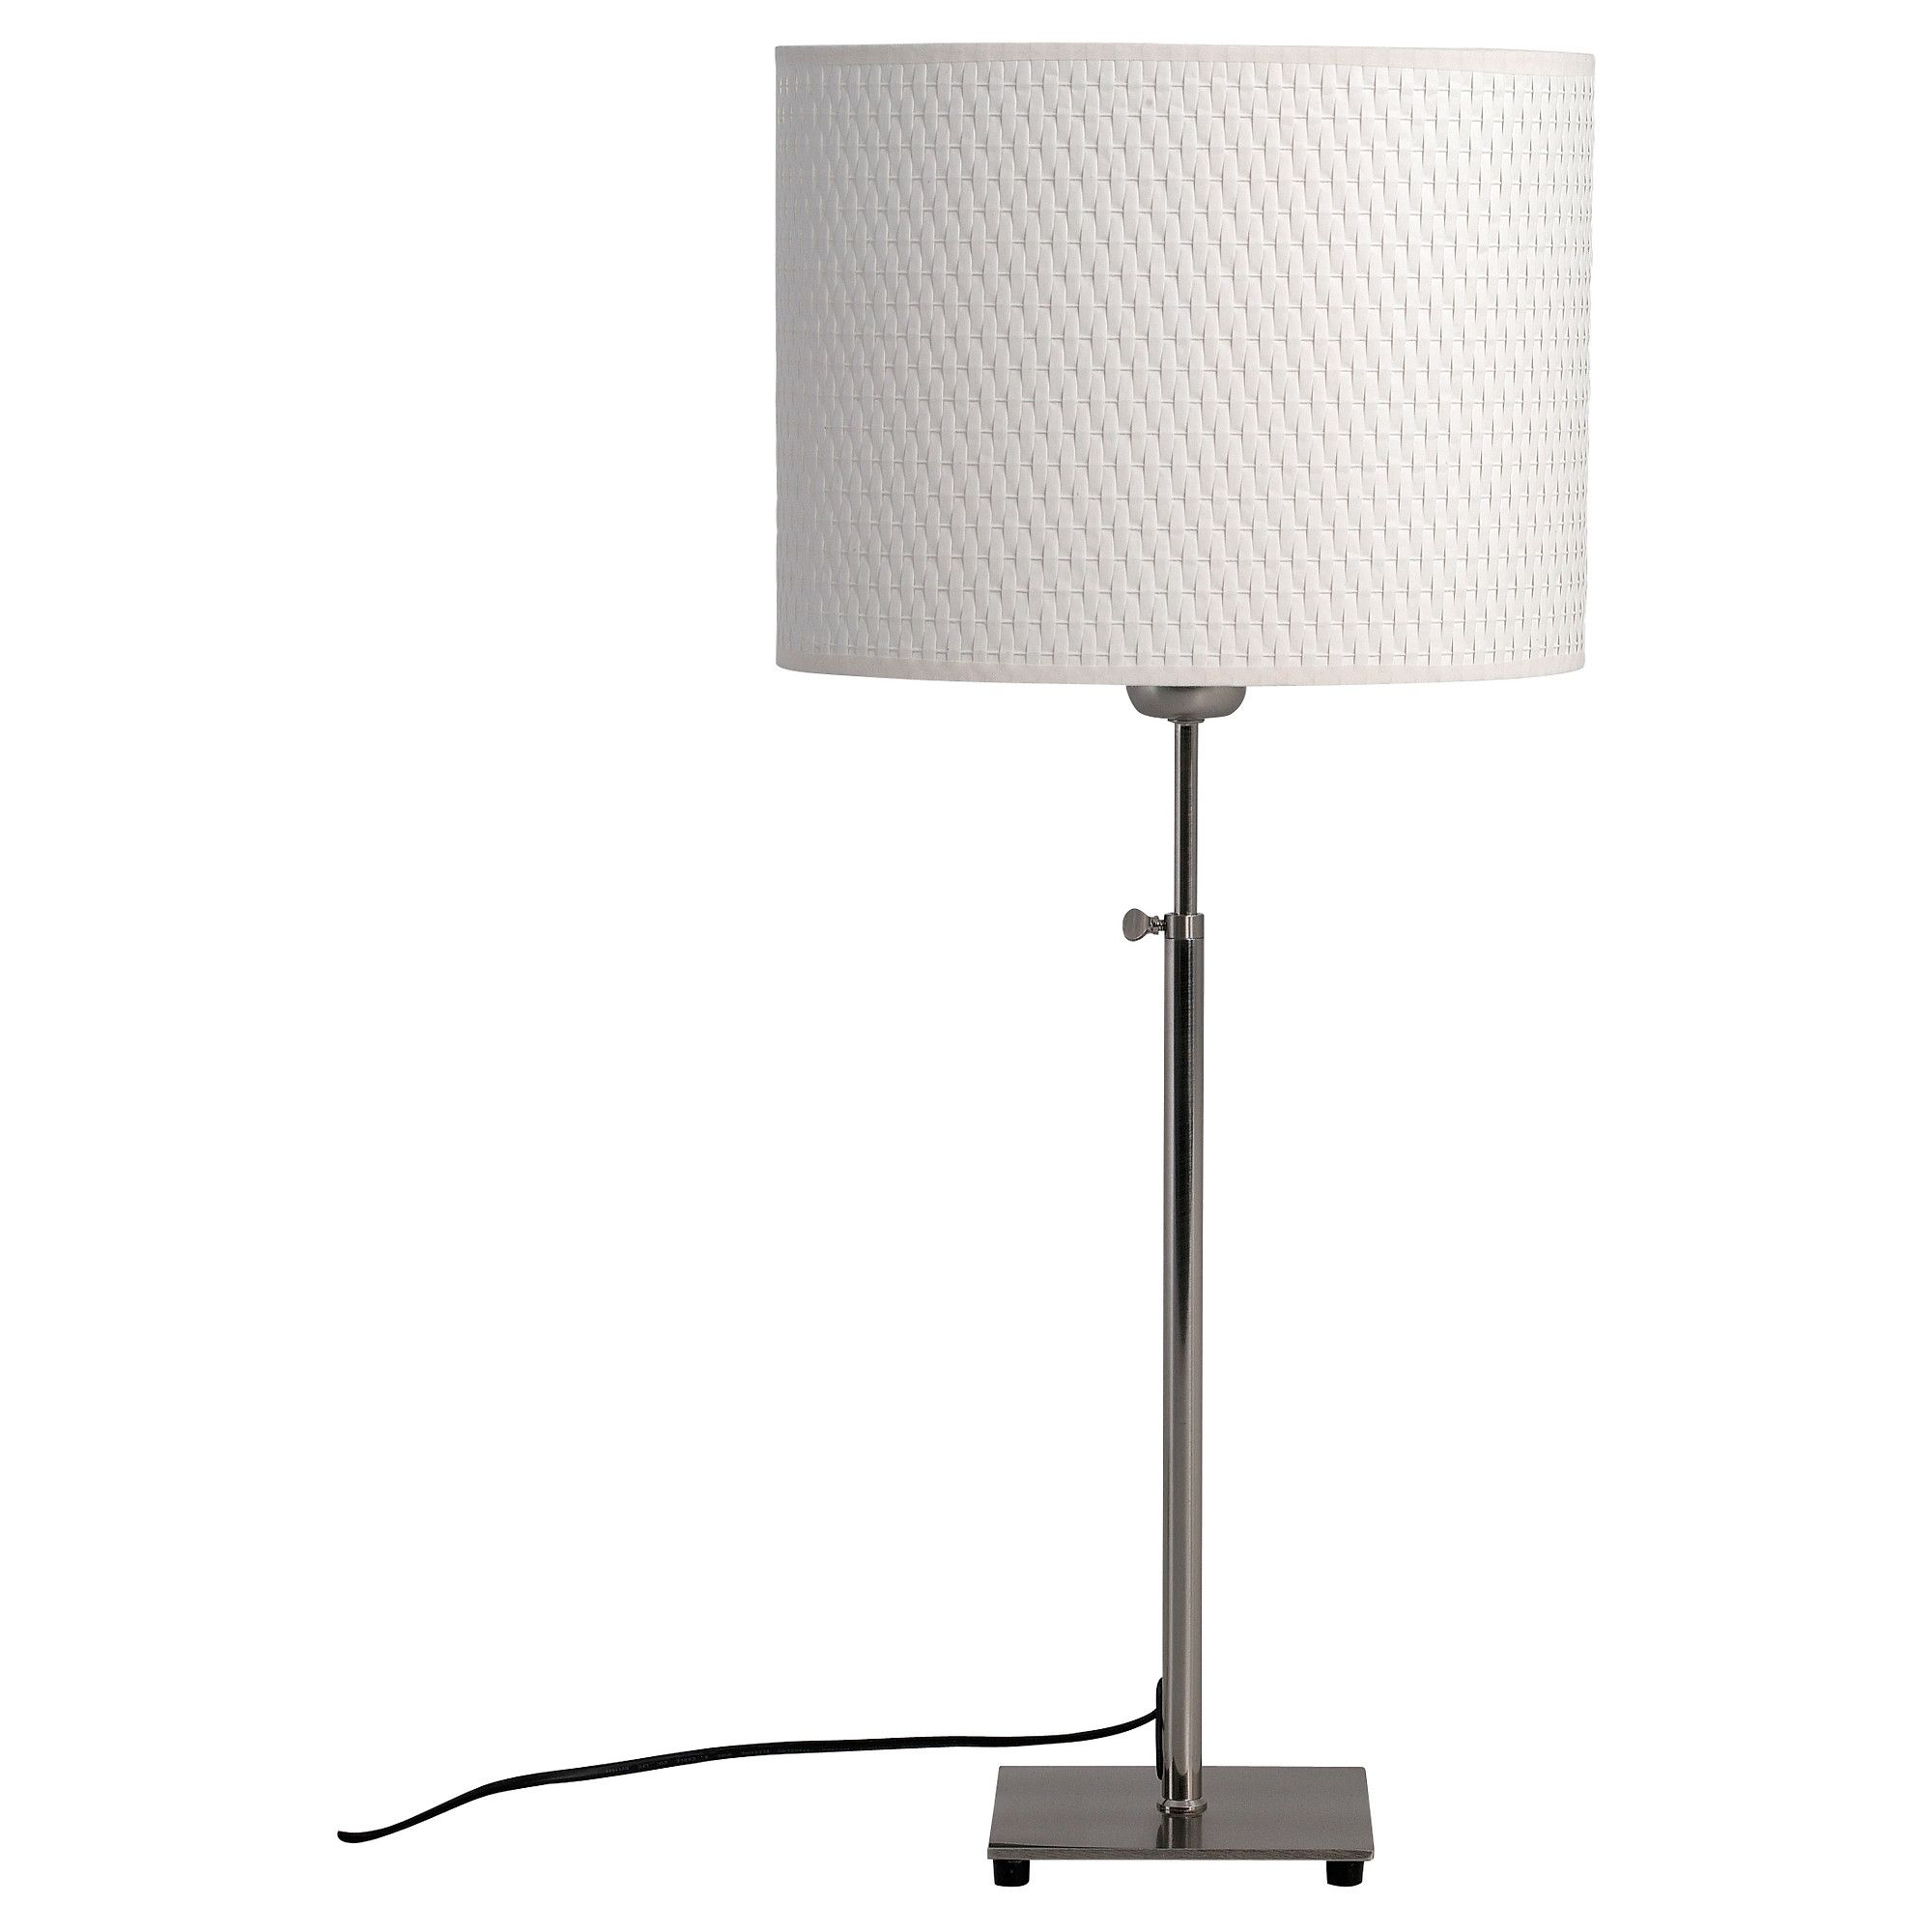 Bedroom Lamps Ikea: ALÄNG Table Lamp, Nickel Plated, White